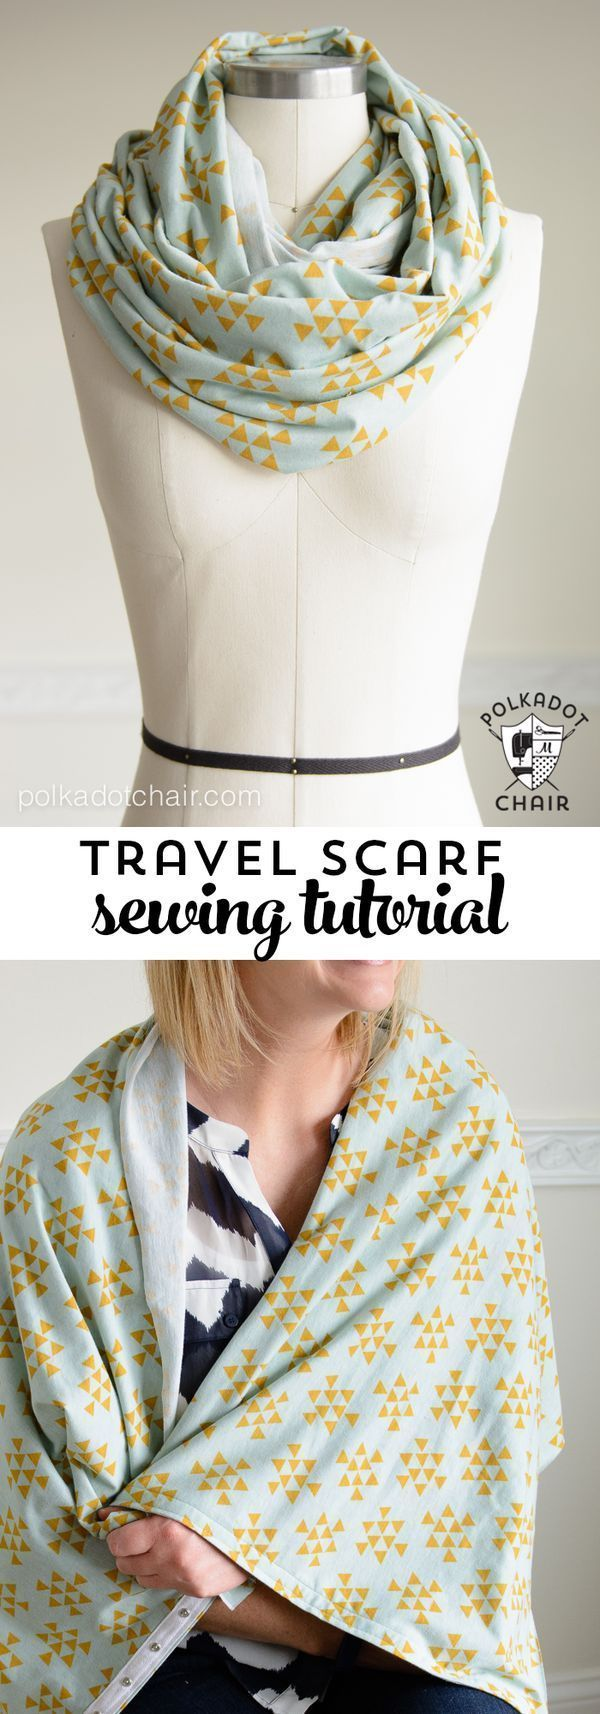 DIY Snap Up Infinity Scarf sewing pattern by Melissa of http://polkadotchair.com - perfect for traveling